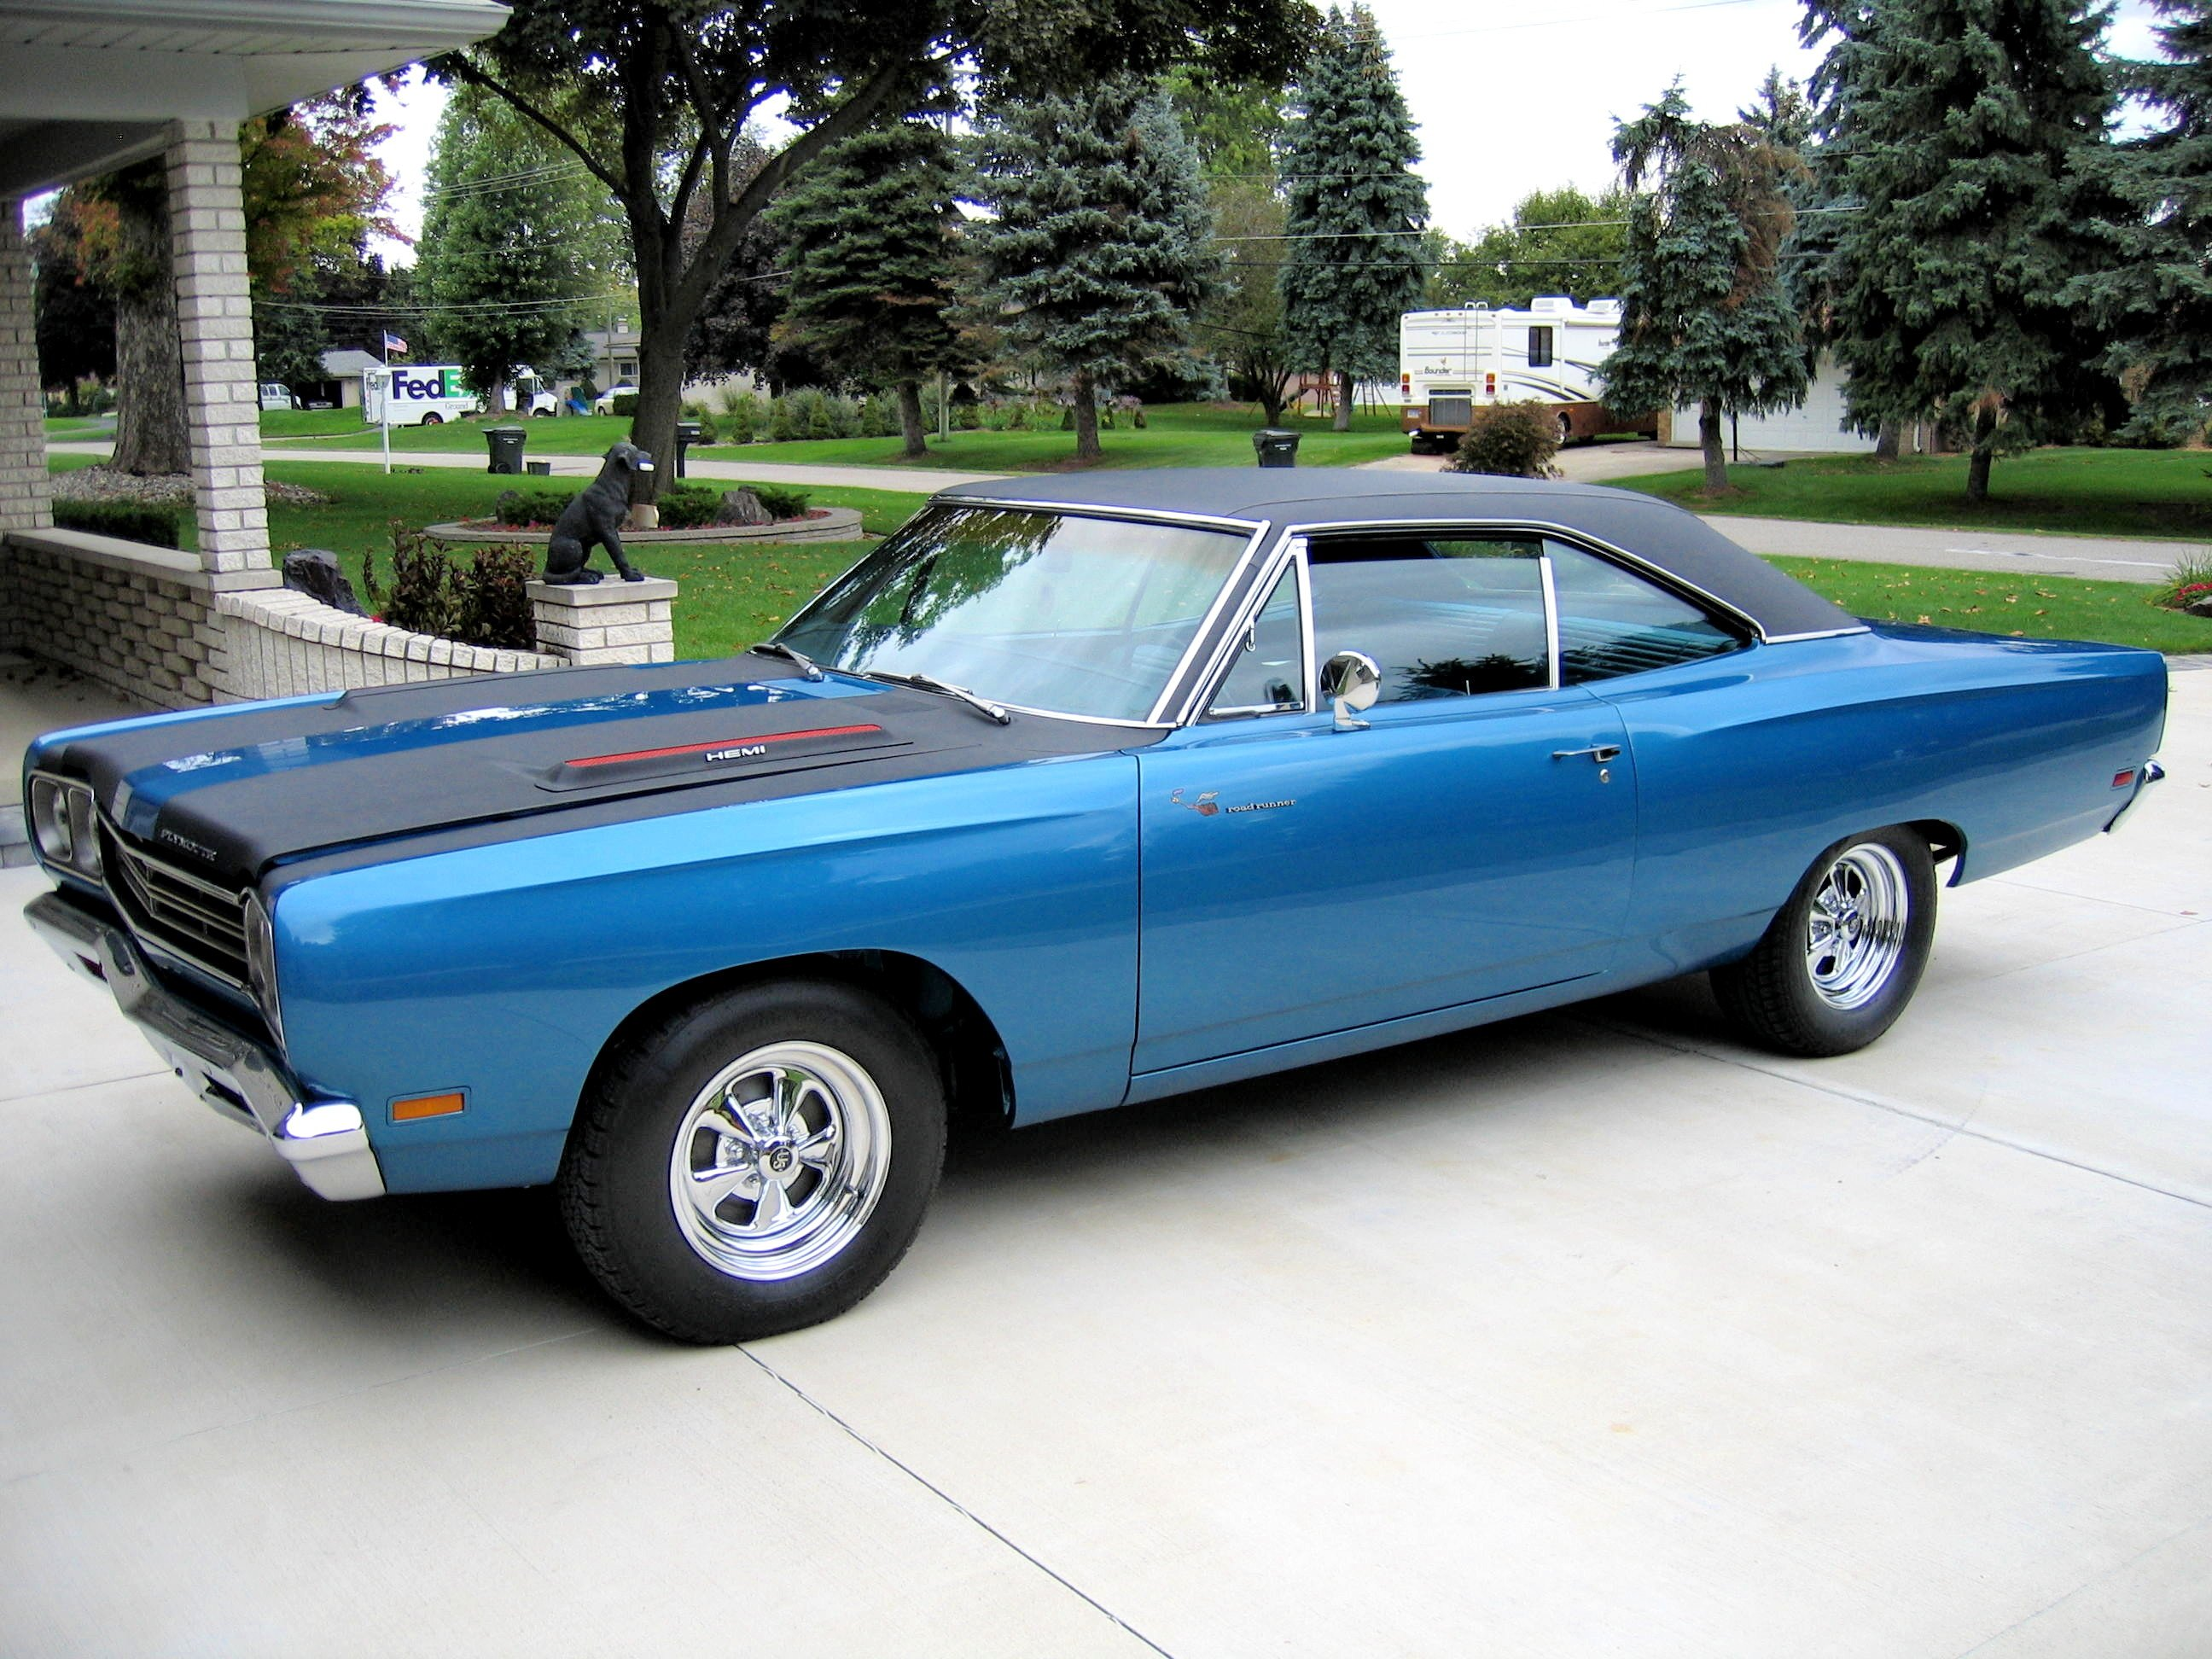 1969 plymouth roadrunner classics for sale classics on autotraderPlymouth I Have A 68 Roadrunner 383 4sp It Has Electronic #1